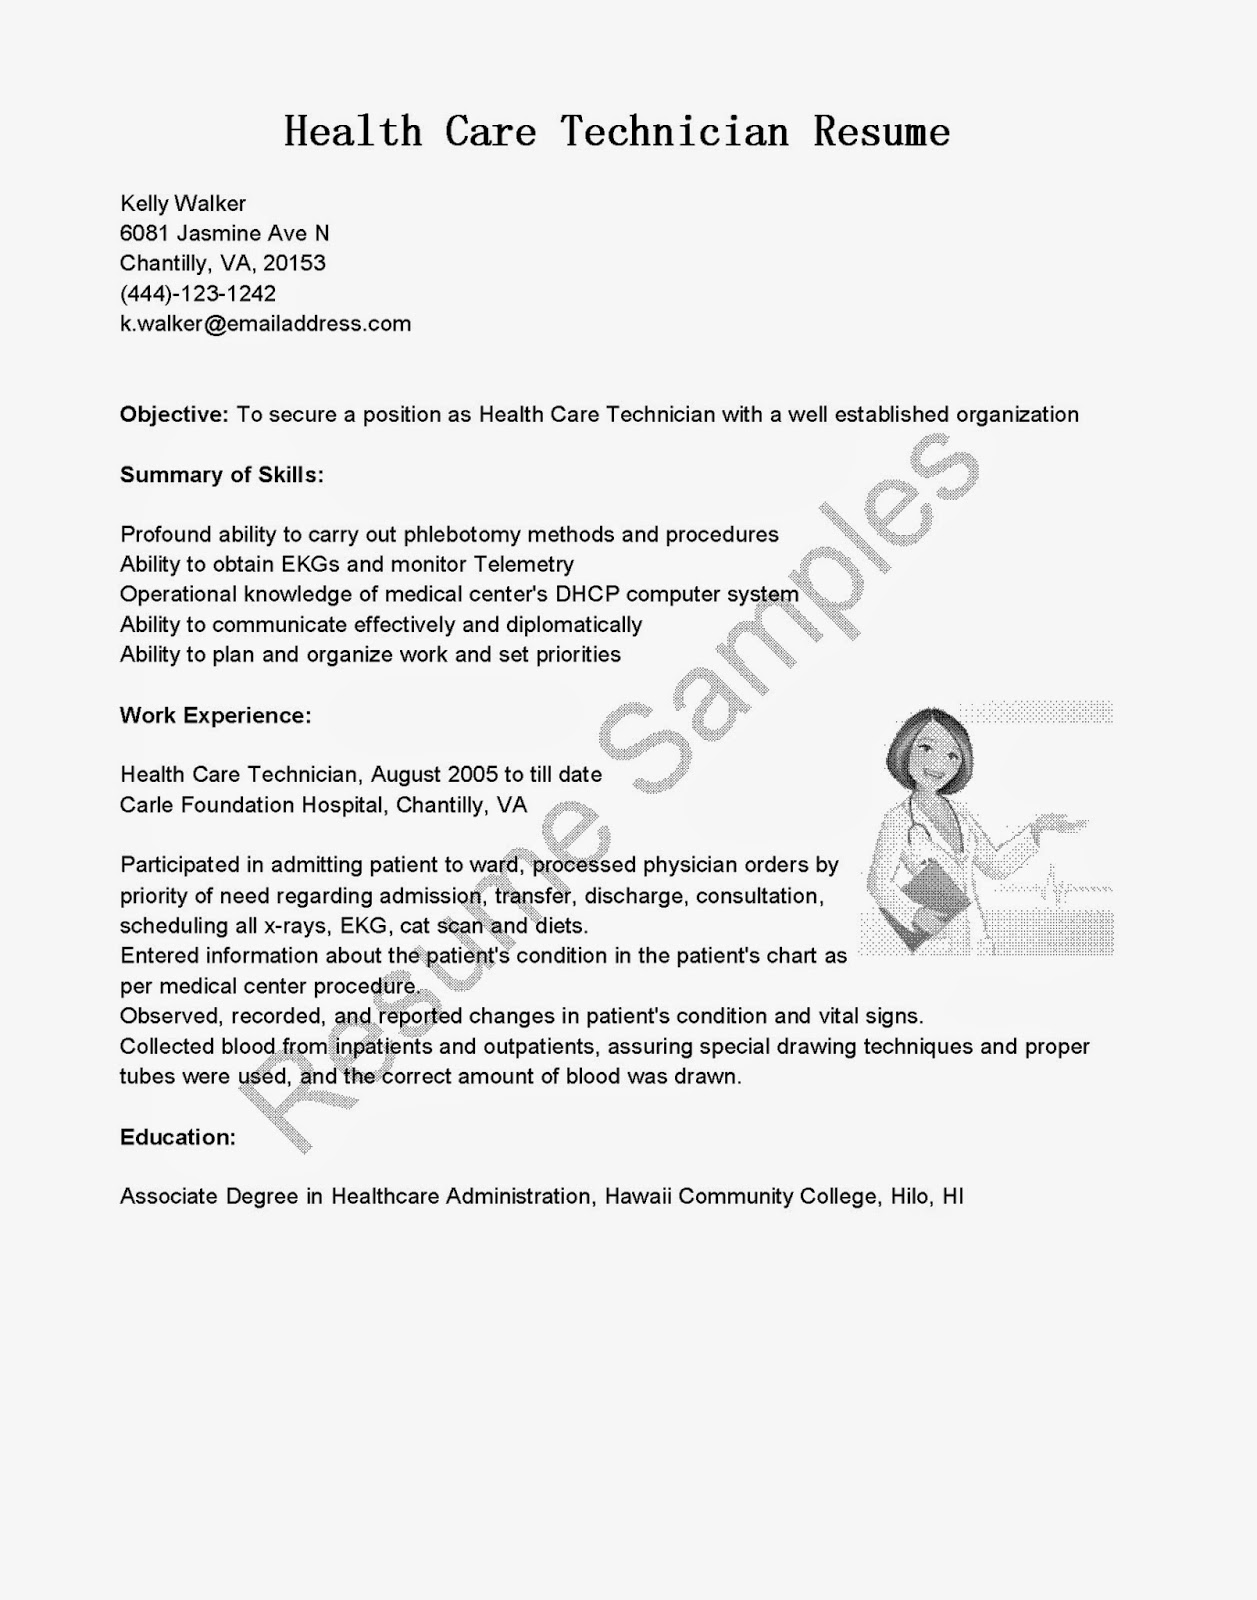 behavioral health technician cover letter - Ophthalmic Technician Cover Letter